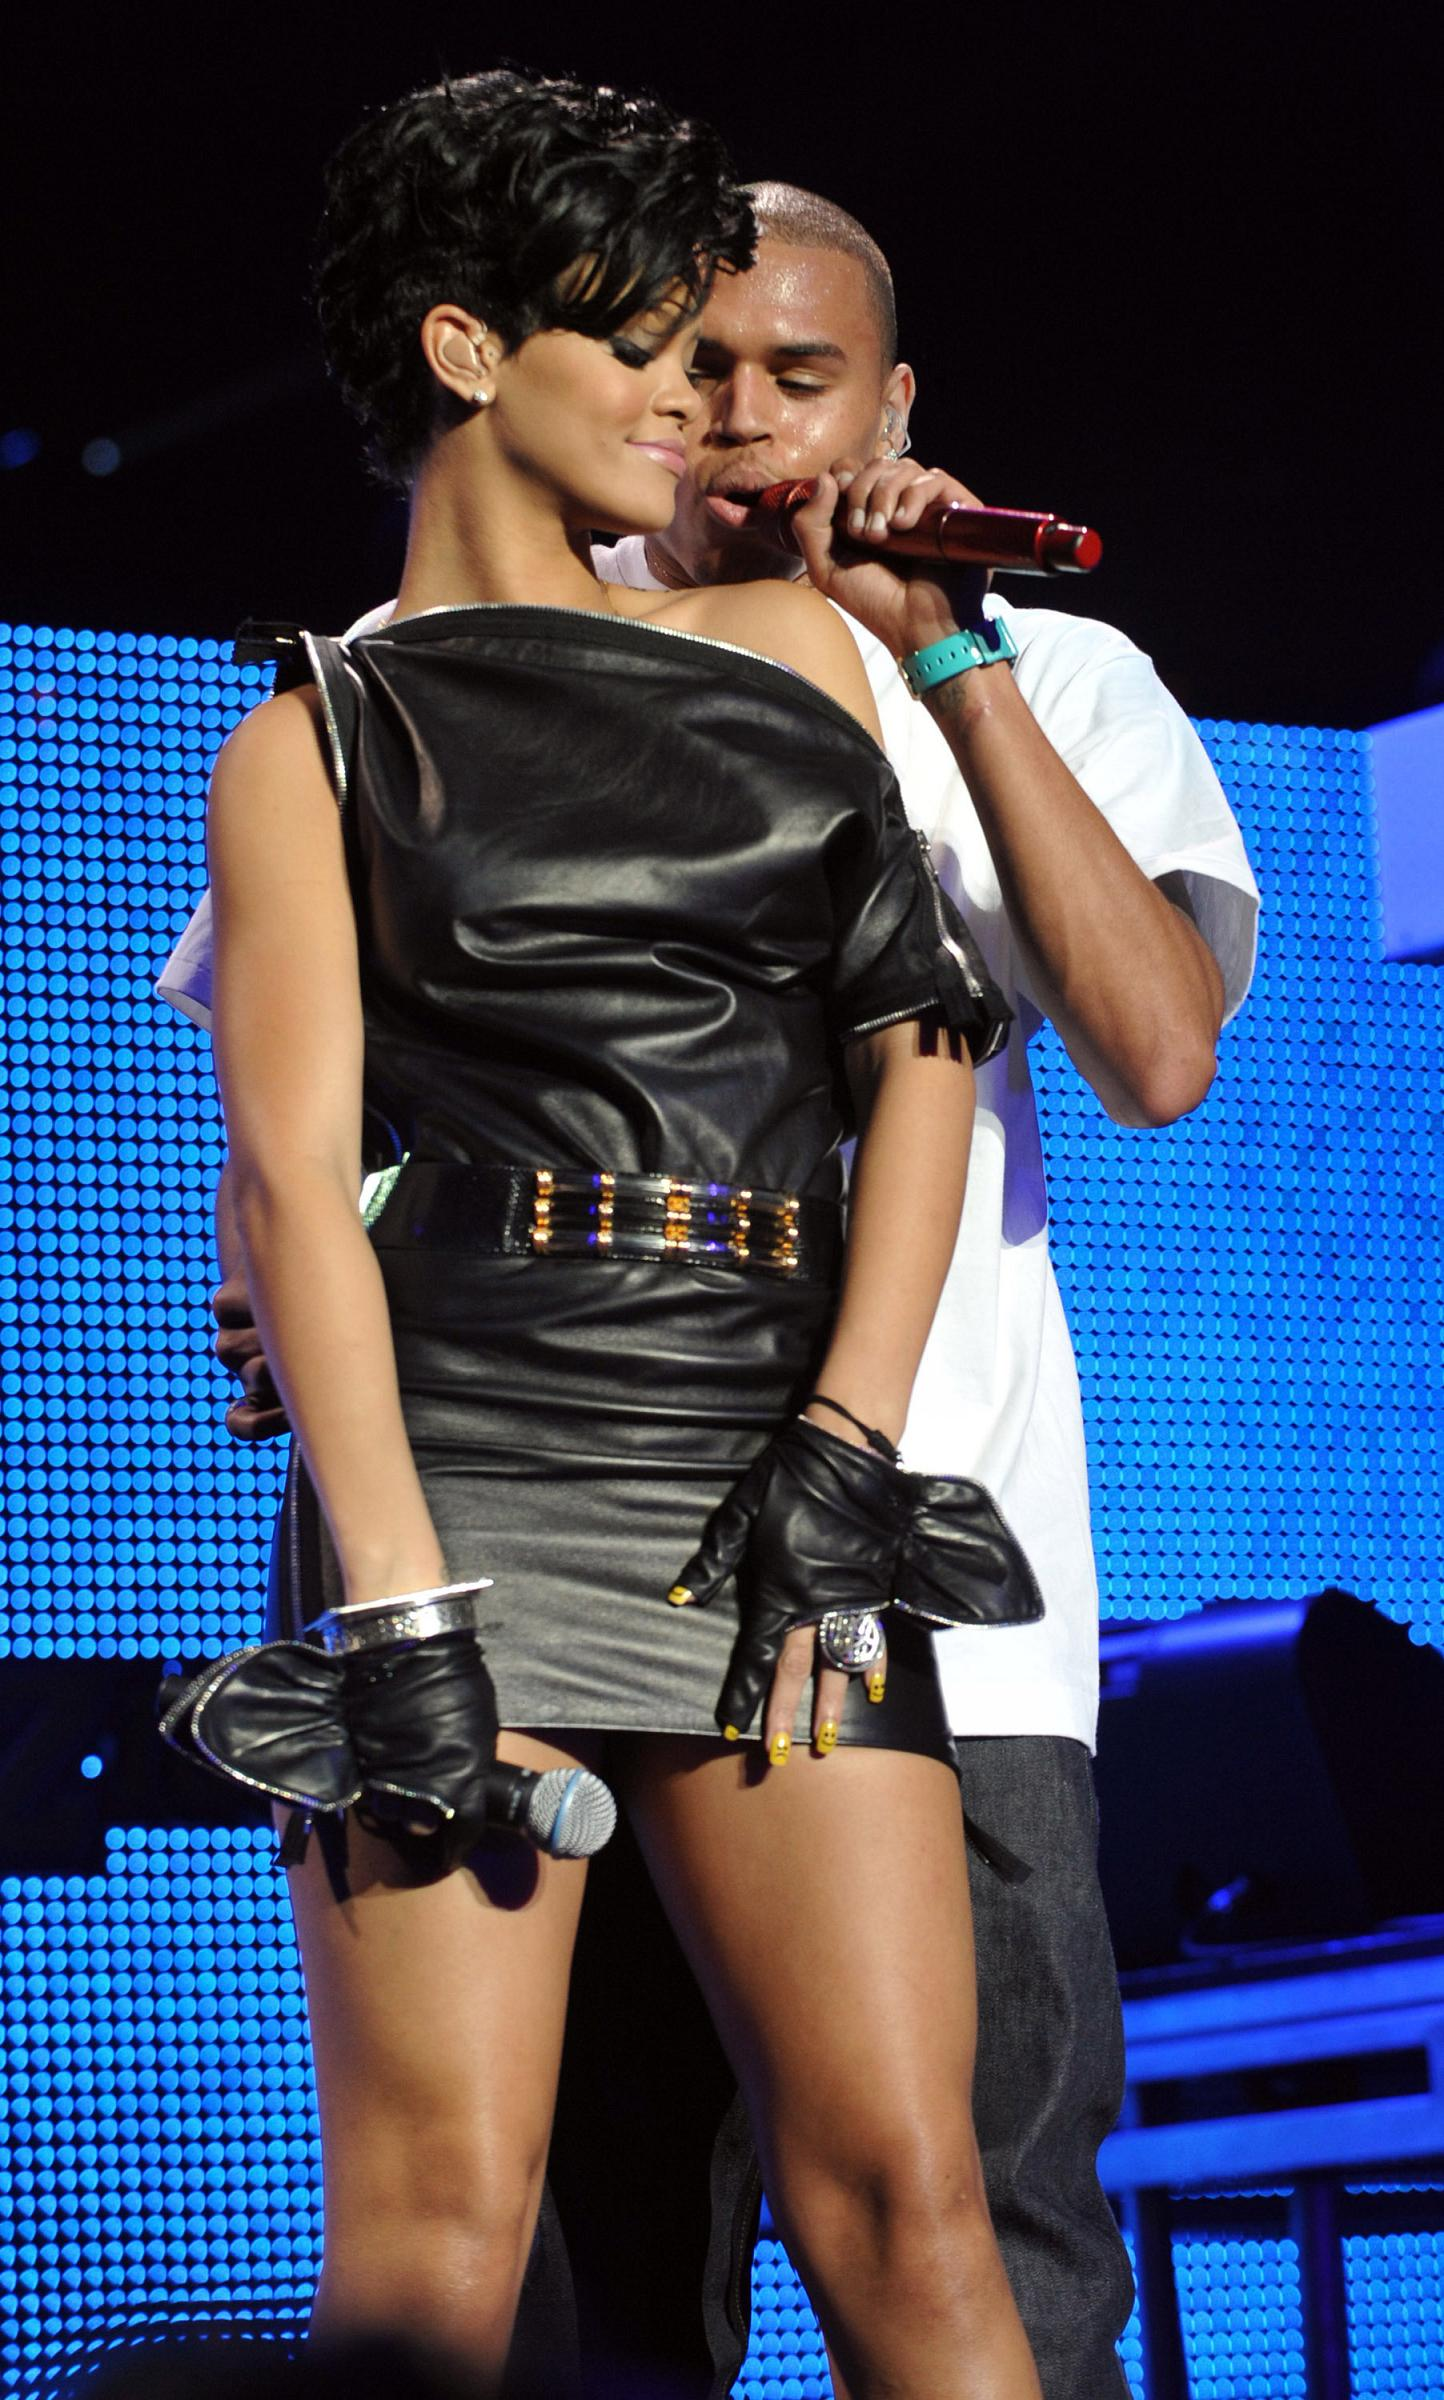 Say It Ain't So, Chris Brown on Rhianna's New Song